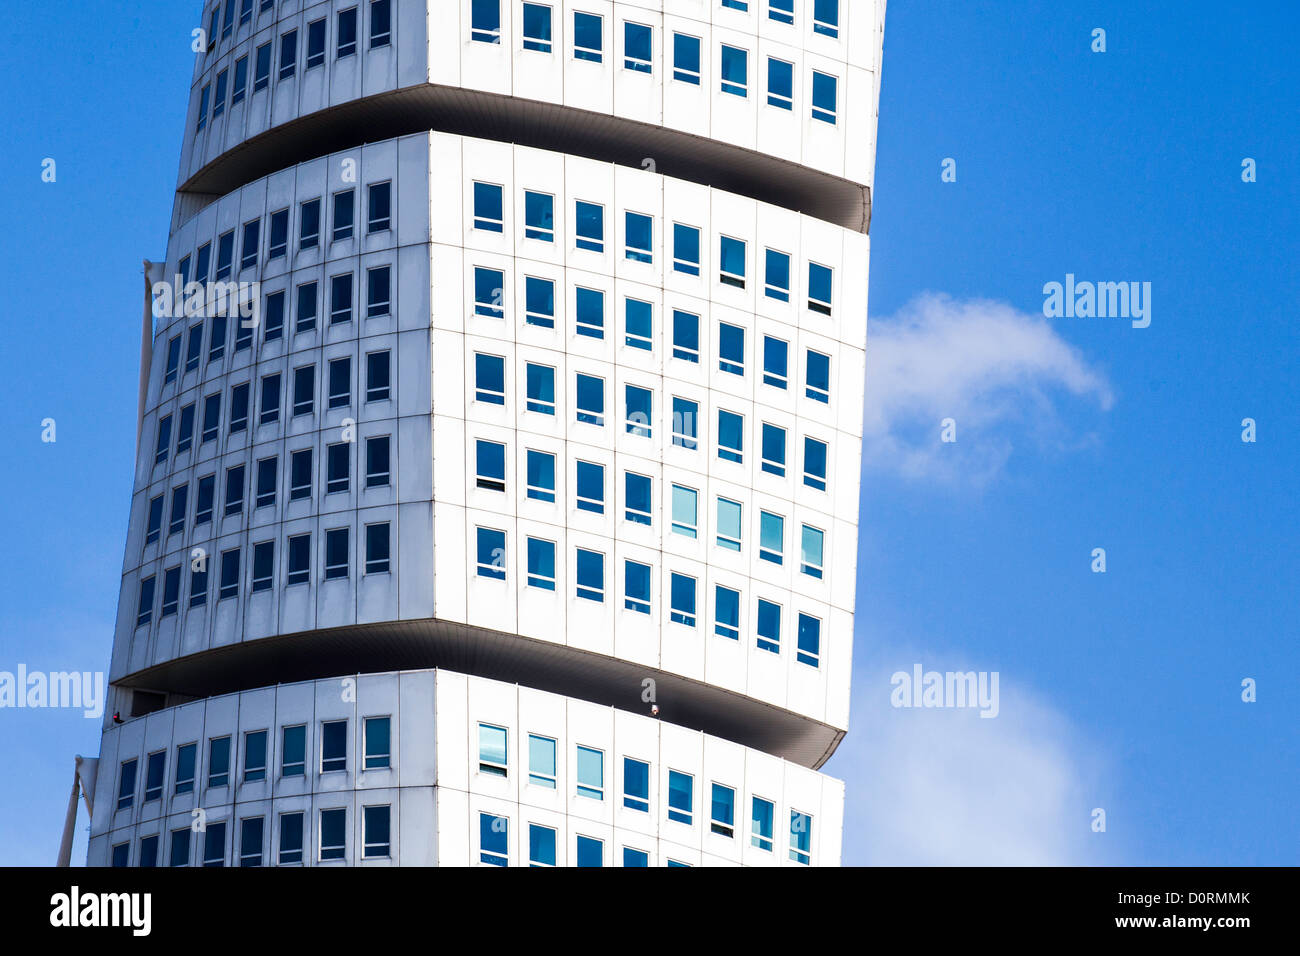 spectacular house with flats outside the swedish town malmoe. - Stock Image